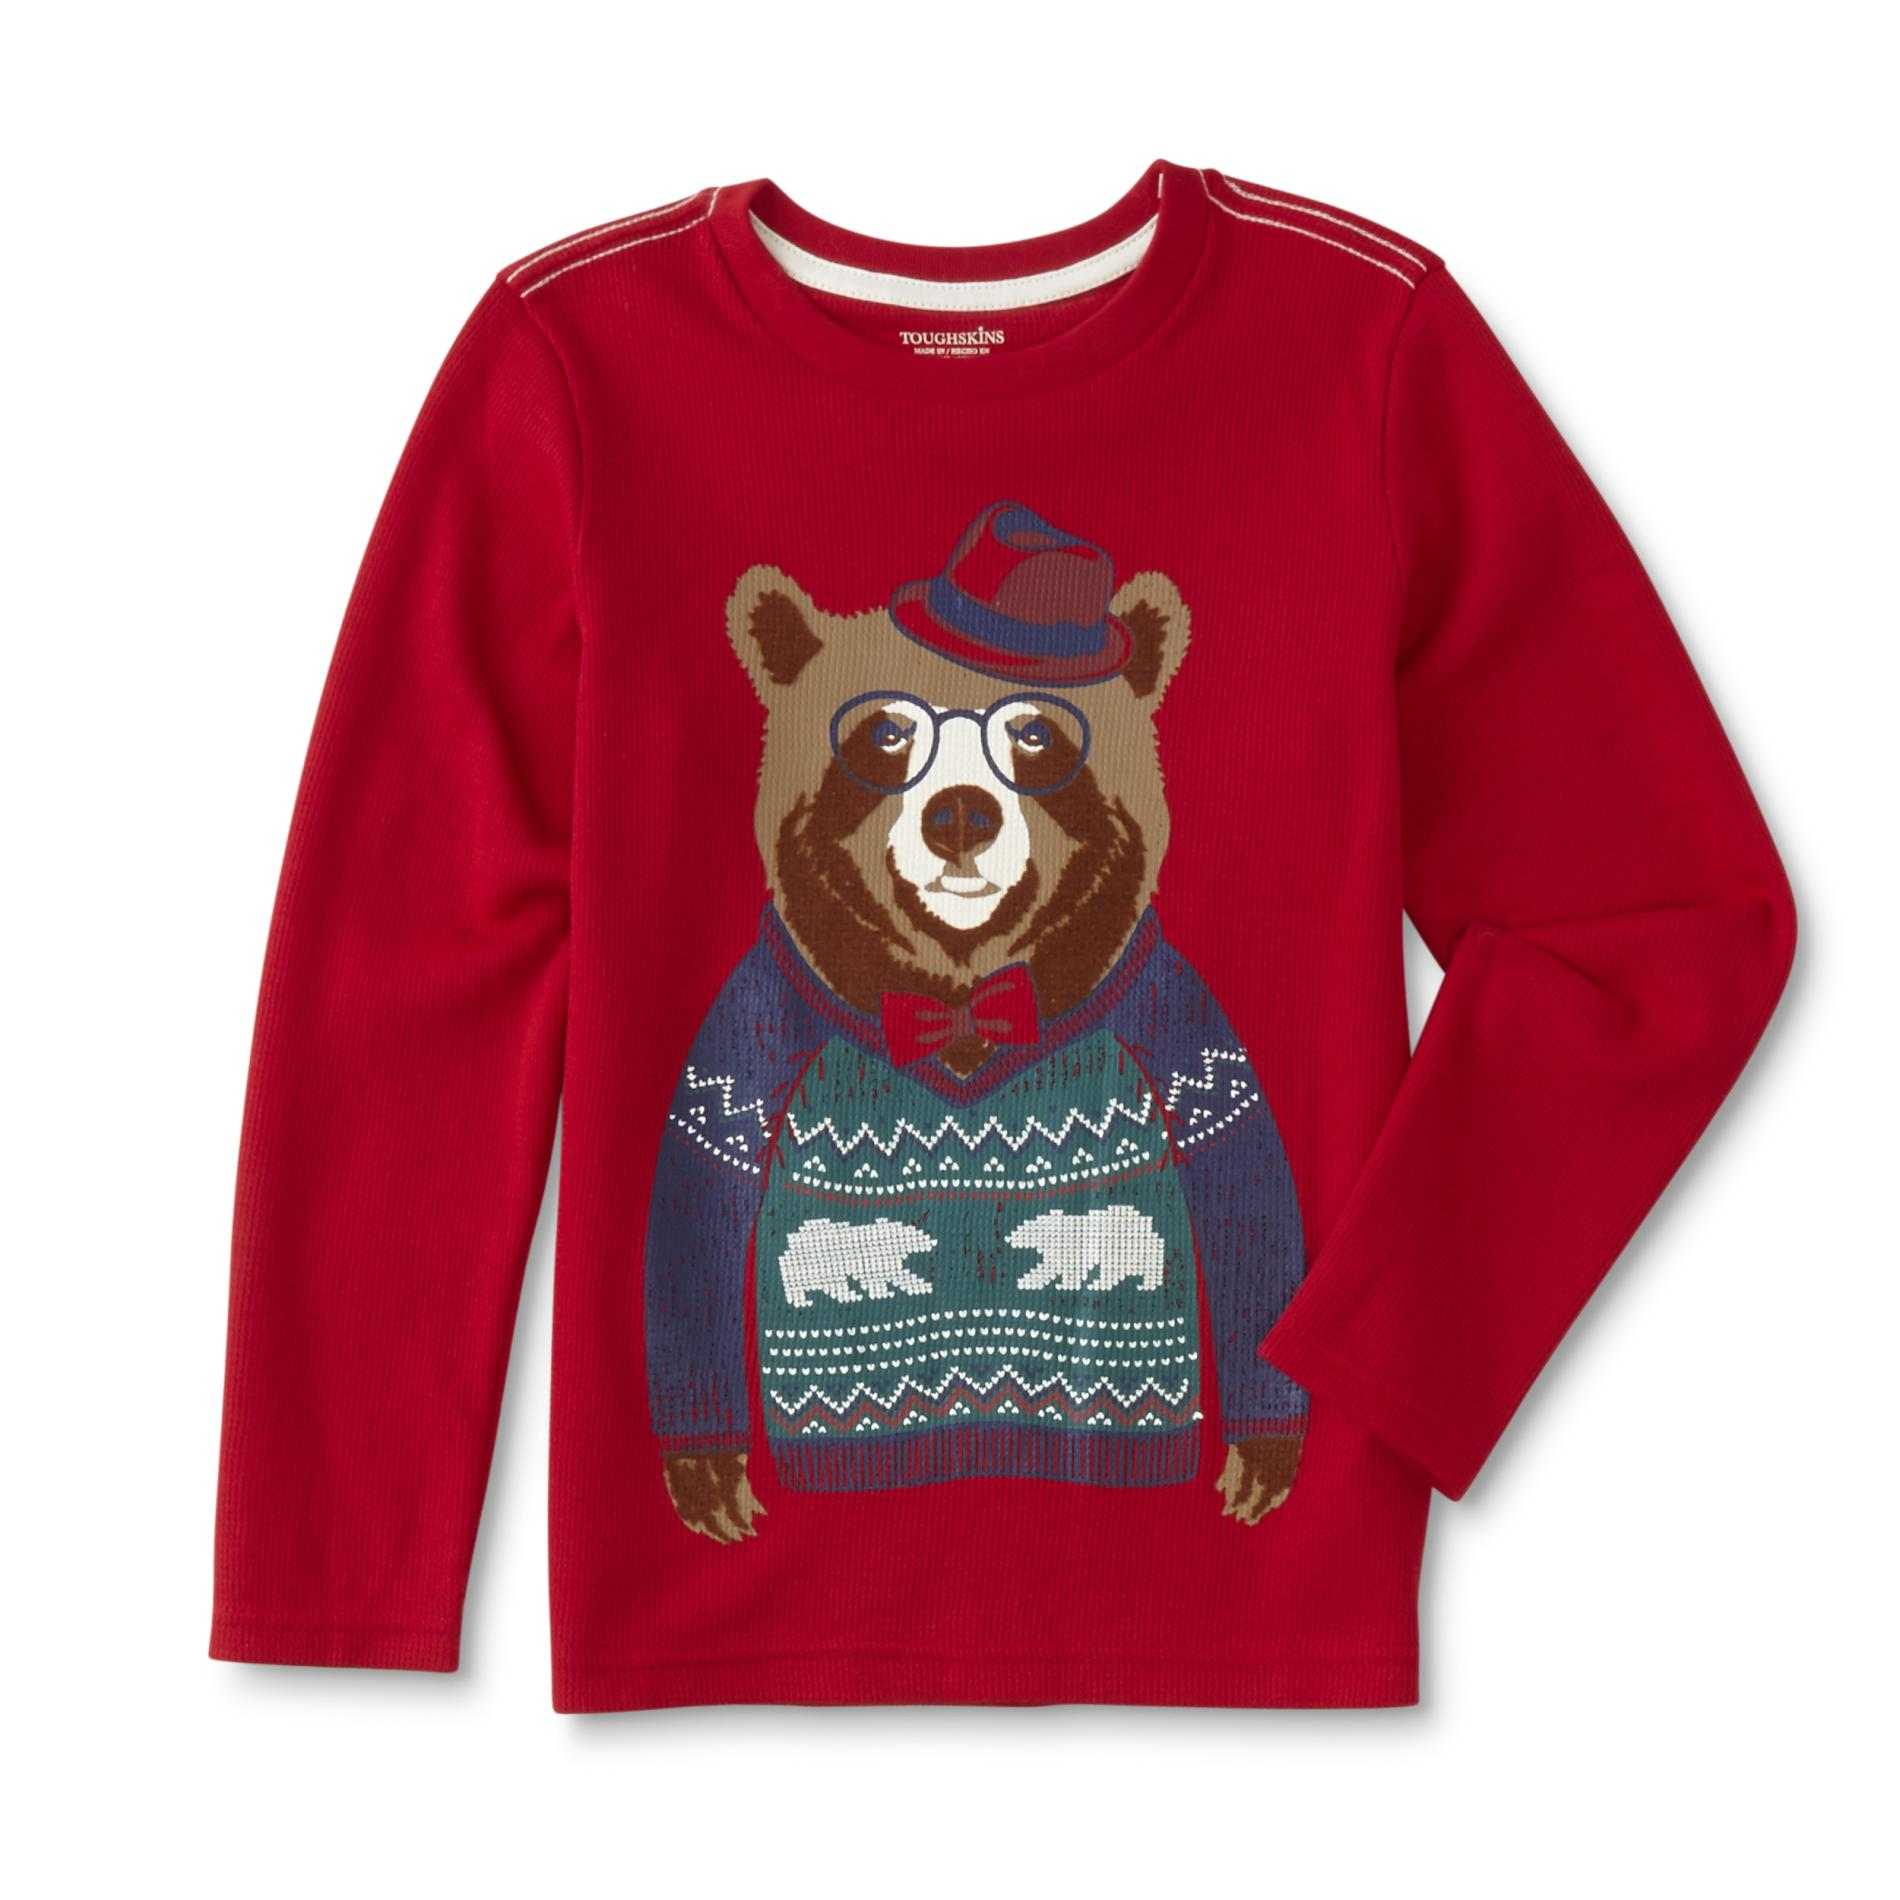 Toughskins Boys' Thermal Graphic T-Shirt - Bear, Size: Large, Tango Red 04049410039